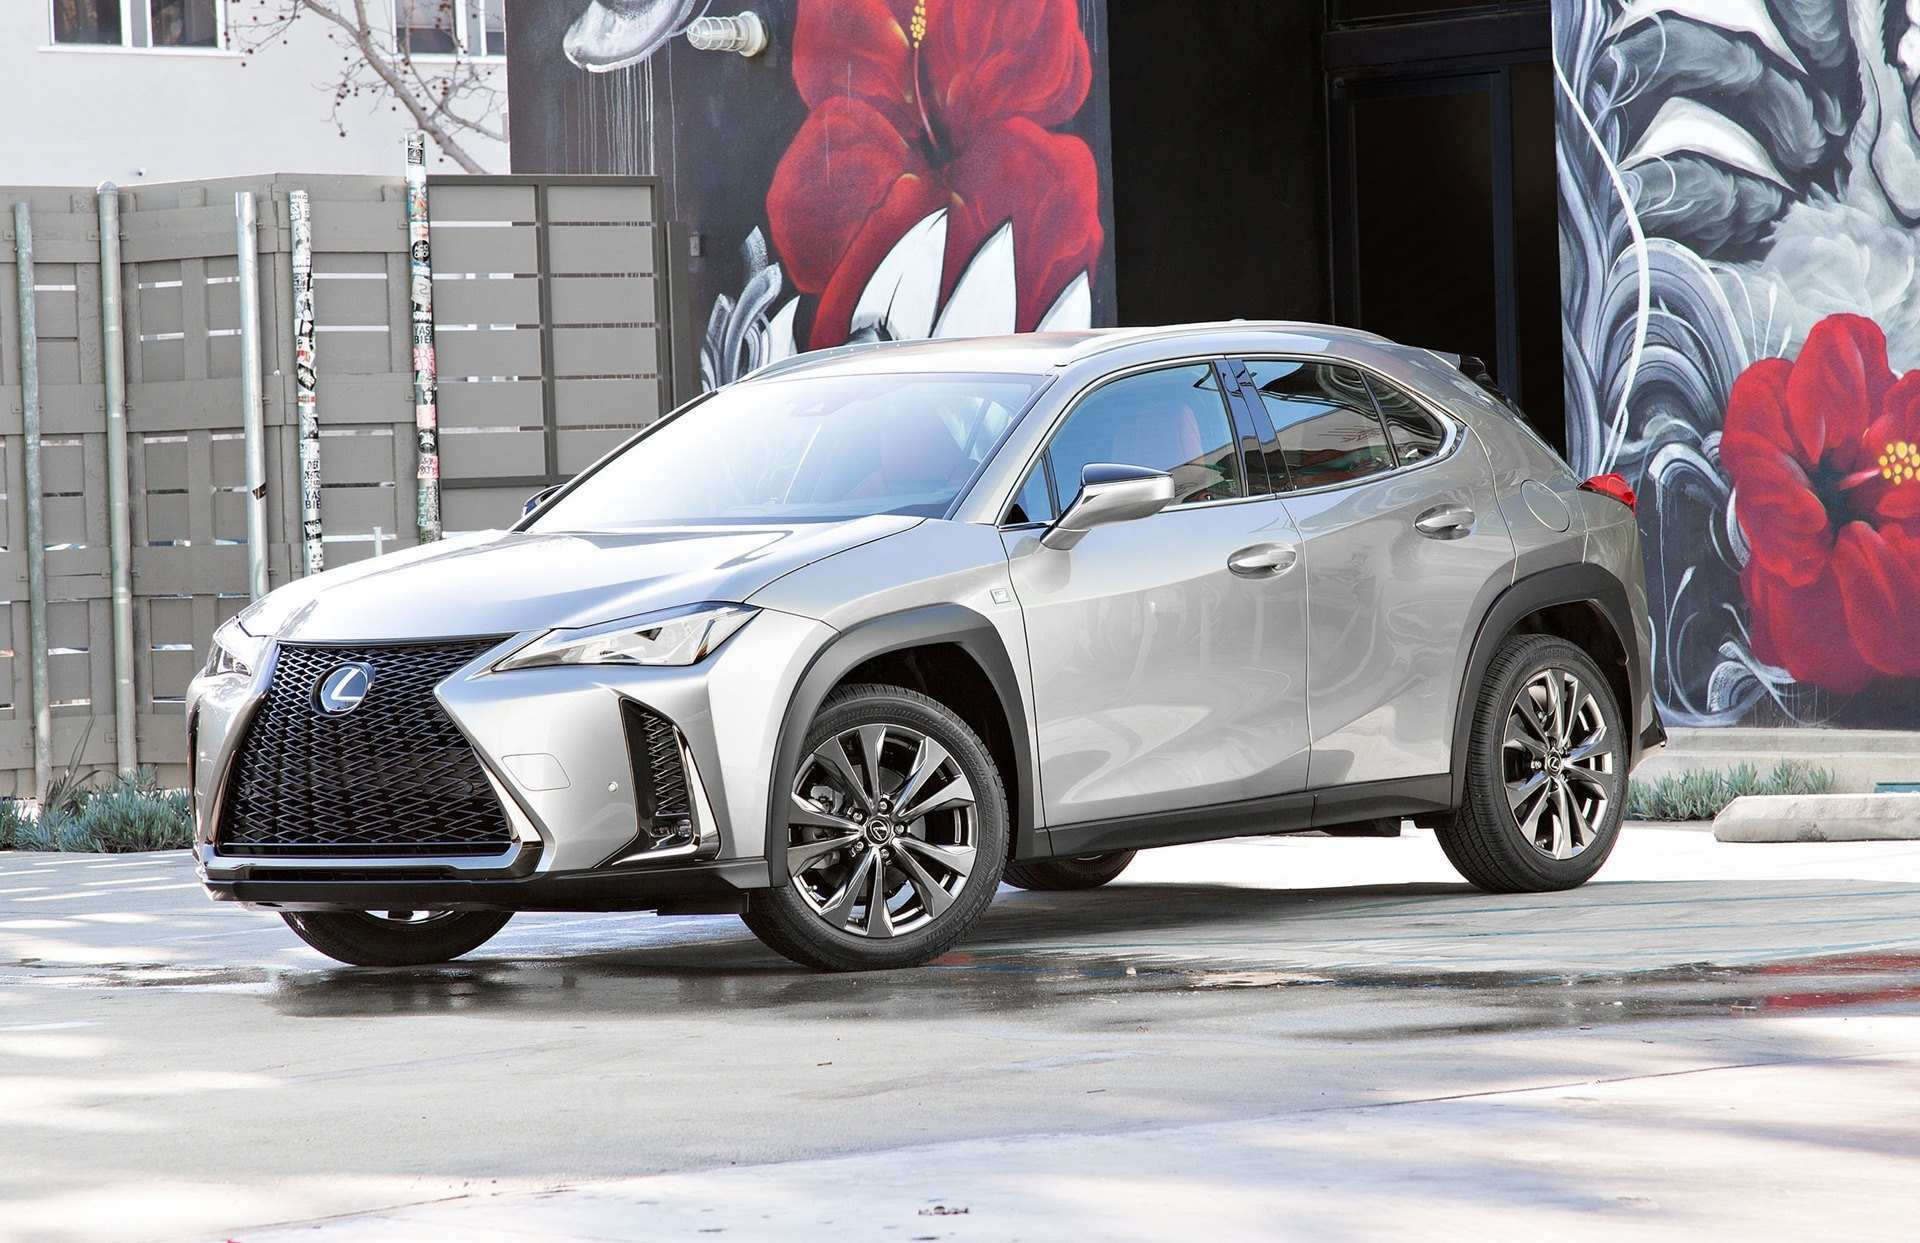 51 New When Lexus 2019 Come Out Pricing